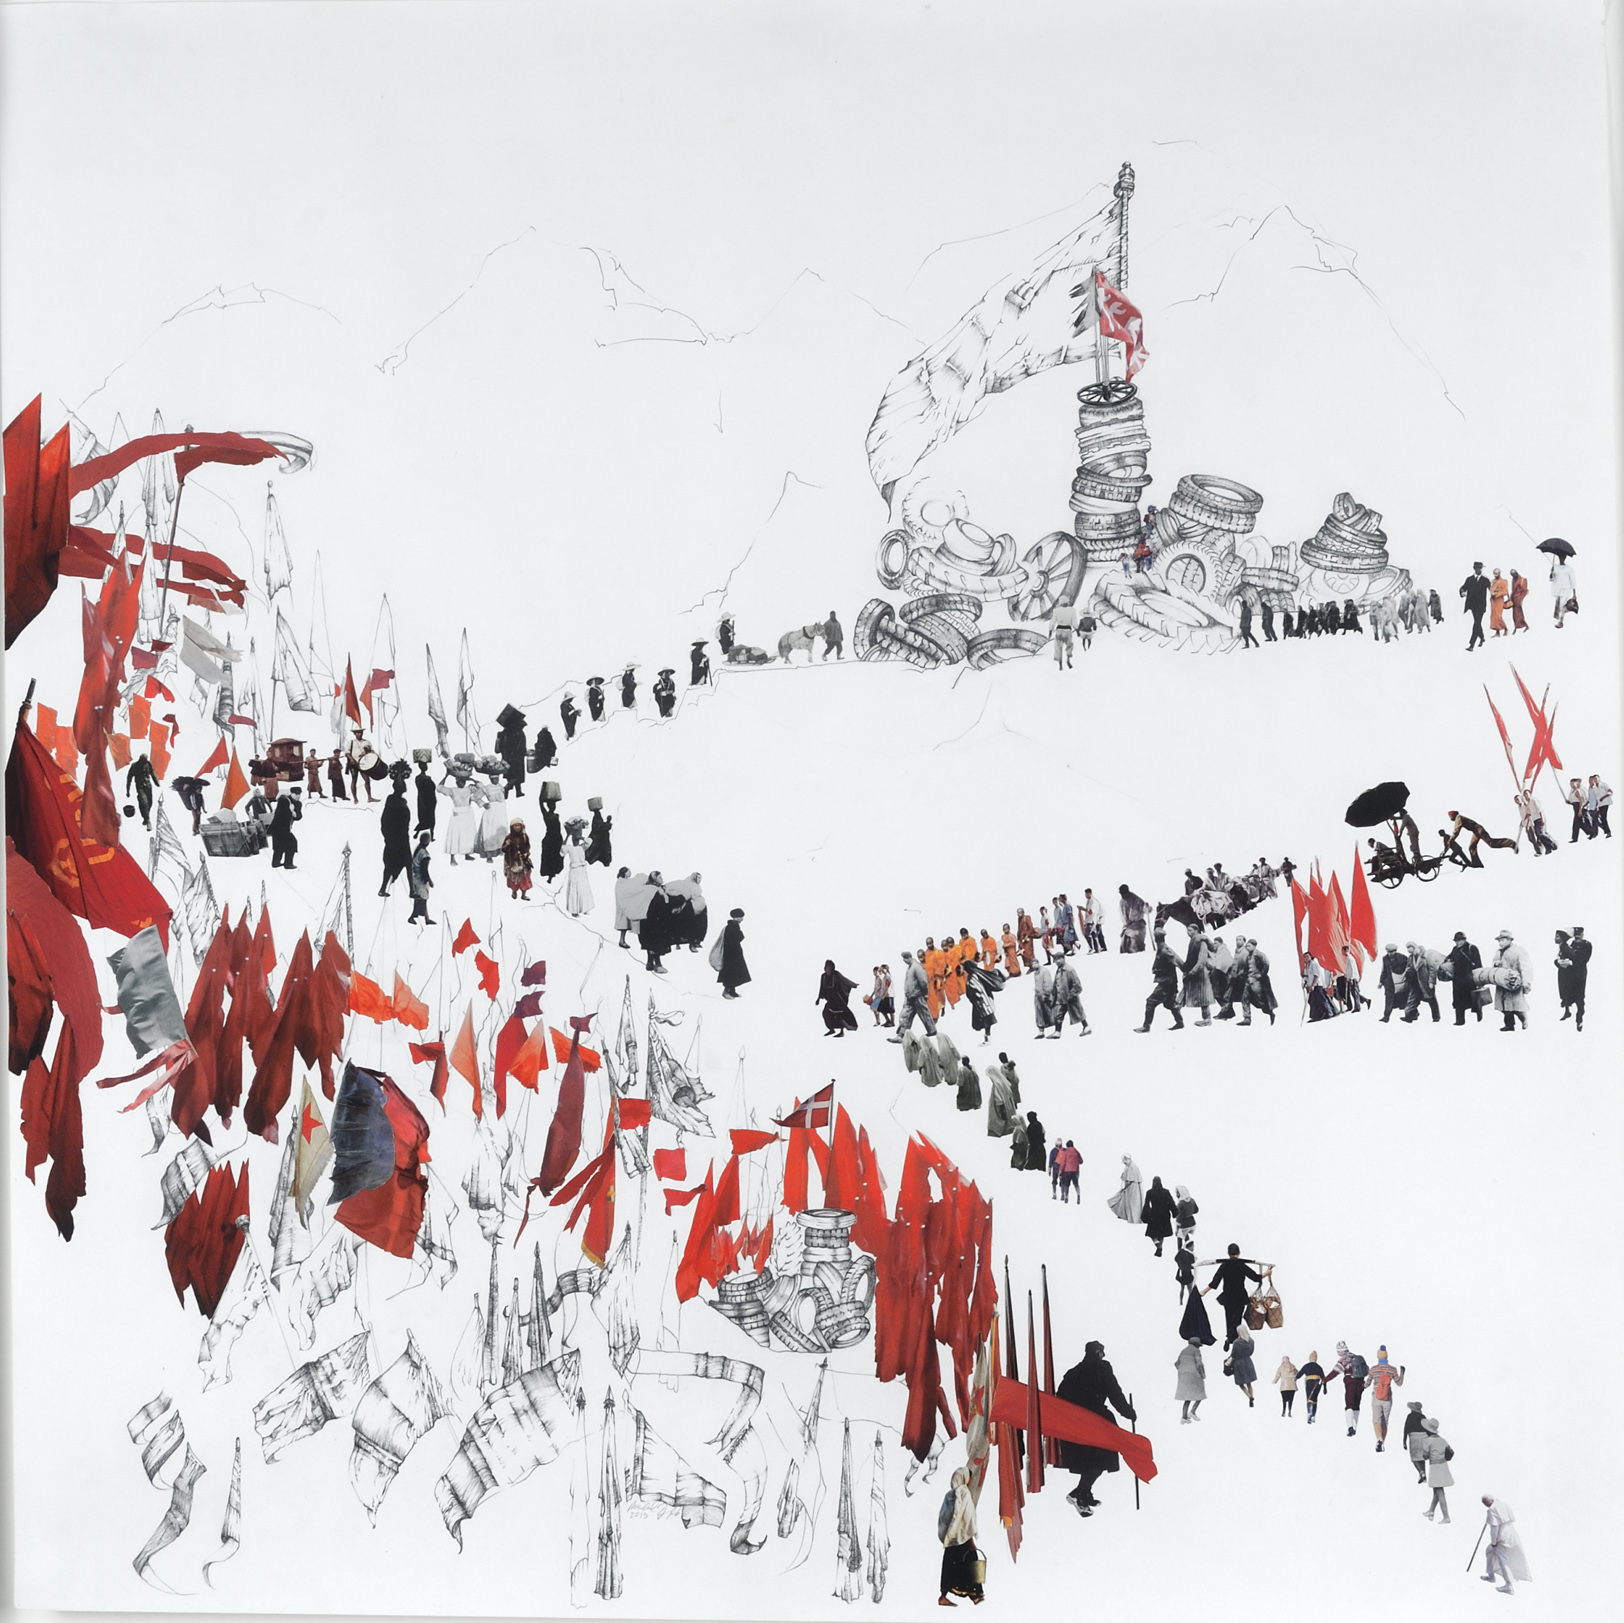 The Whole World Is Marching, 2013 (39 x 39 in)